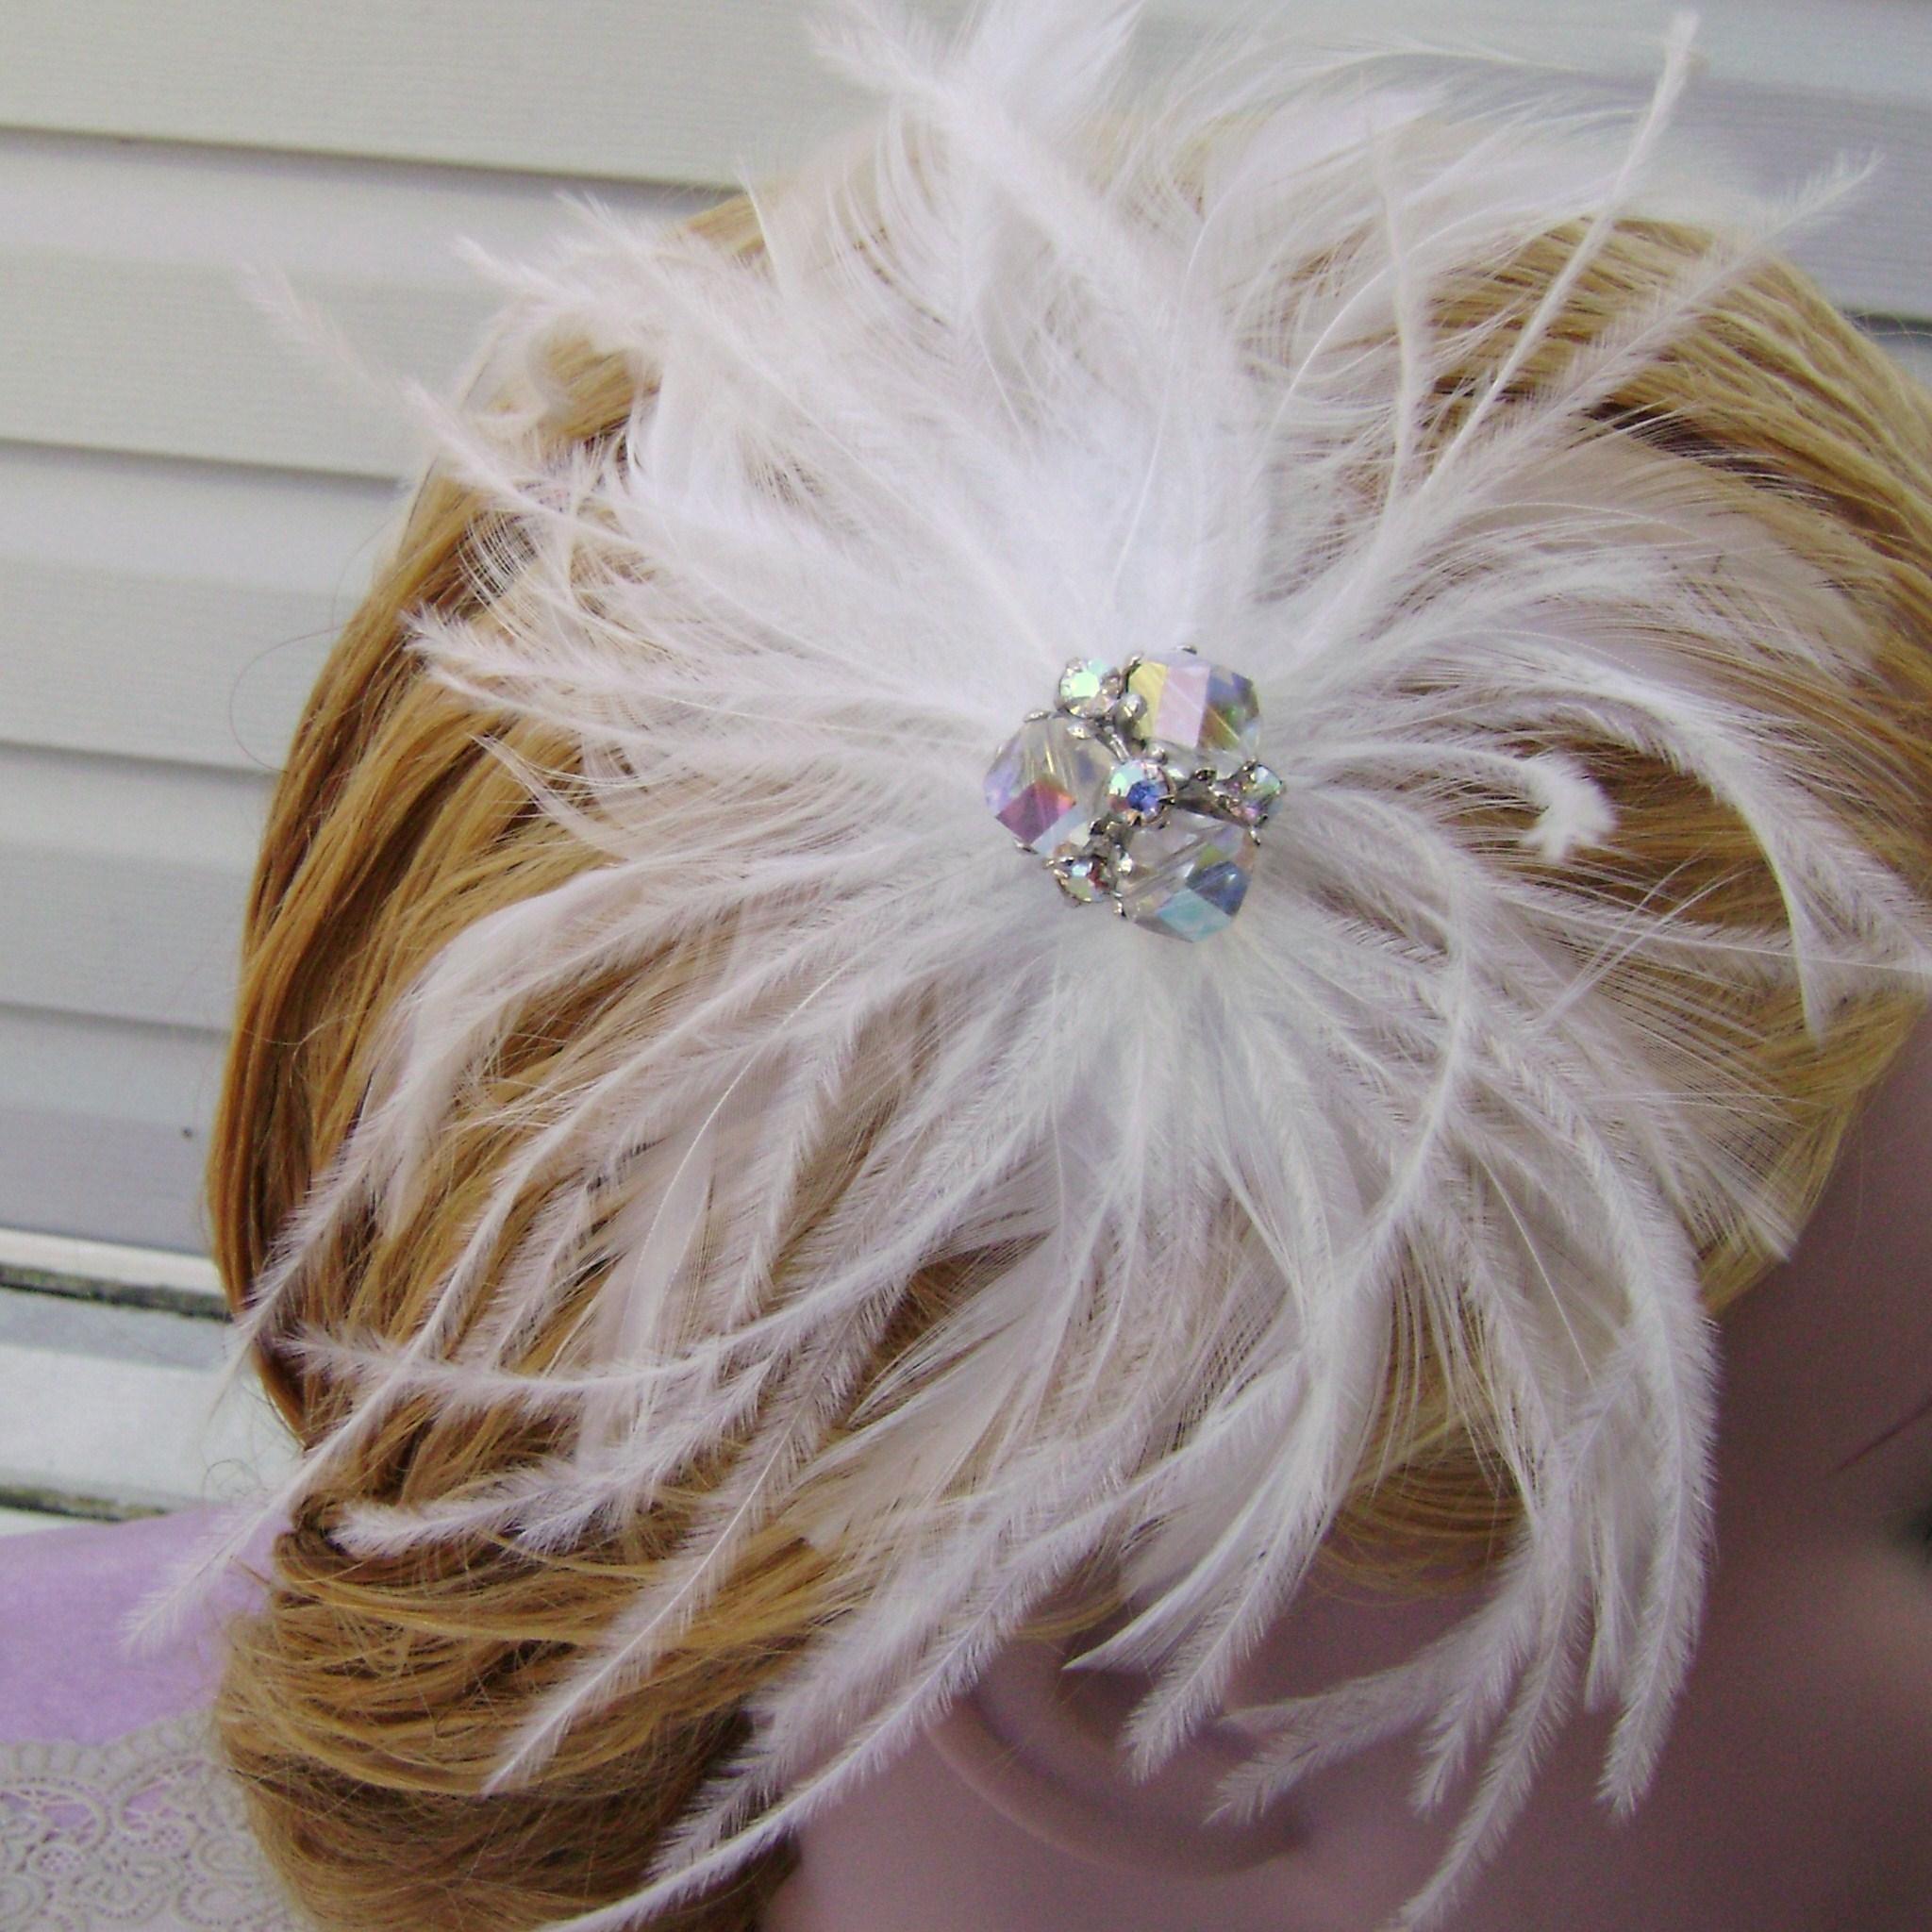 Beauty, Jewelry, Bridesmaids, Bridesmaids Dresses, Vintage Wedding Dresses, Fashion, white, silver, Feathers, Vintage, Hair, Accessory, Fascinator, Feather, Donnaella wedding accessories, Feather Wedding Dresses